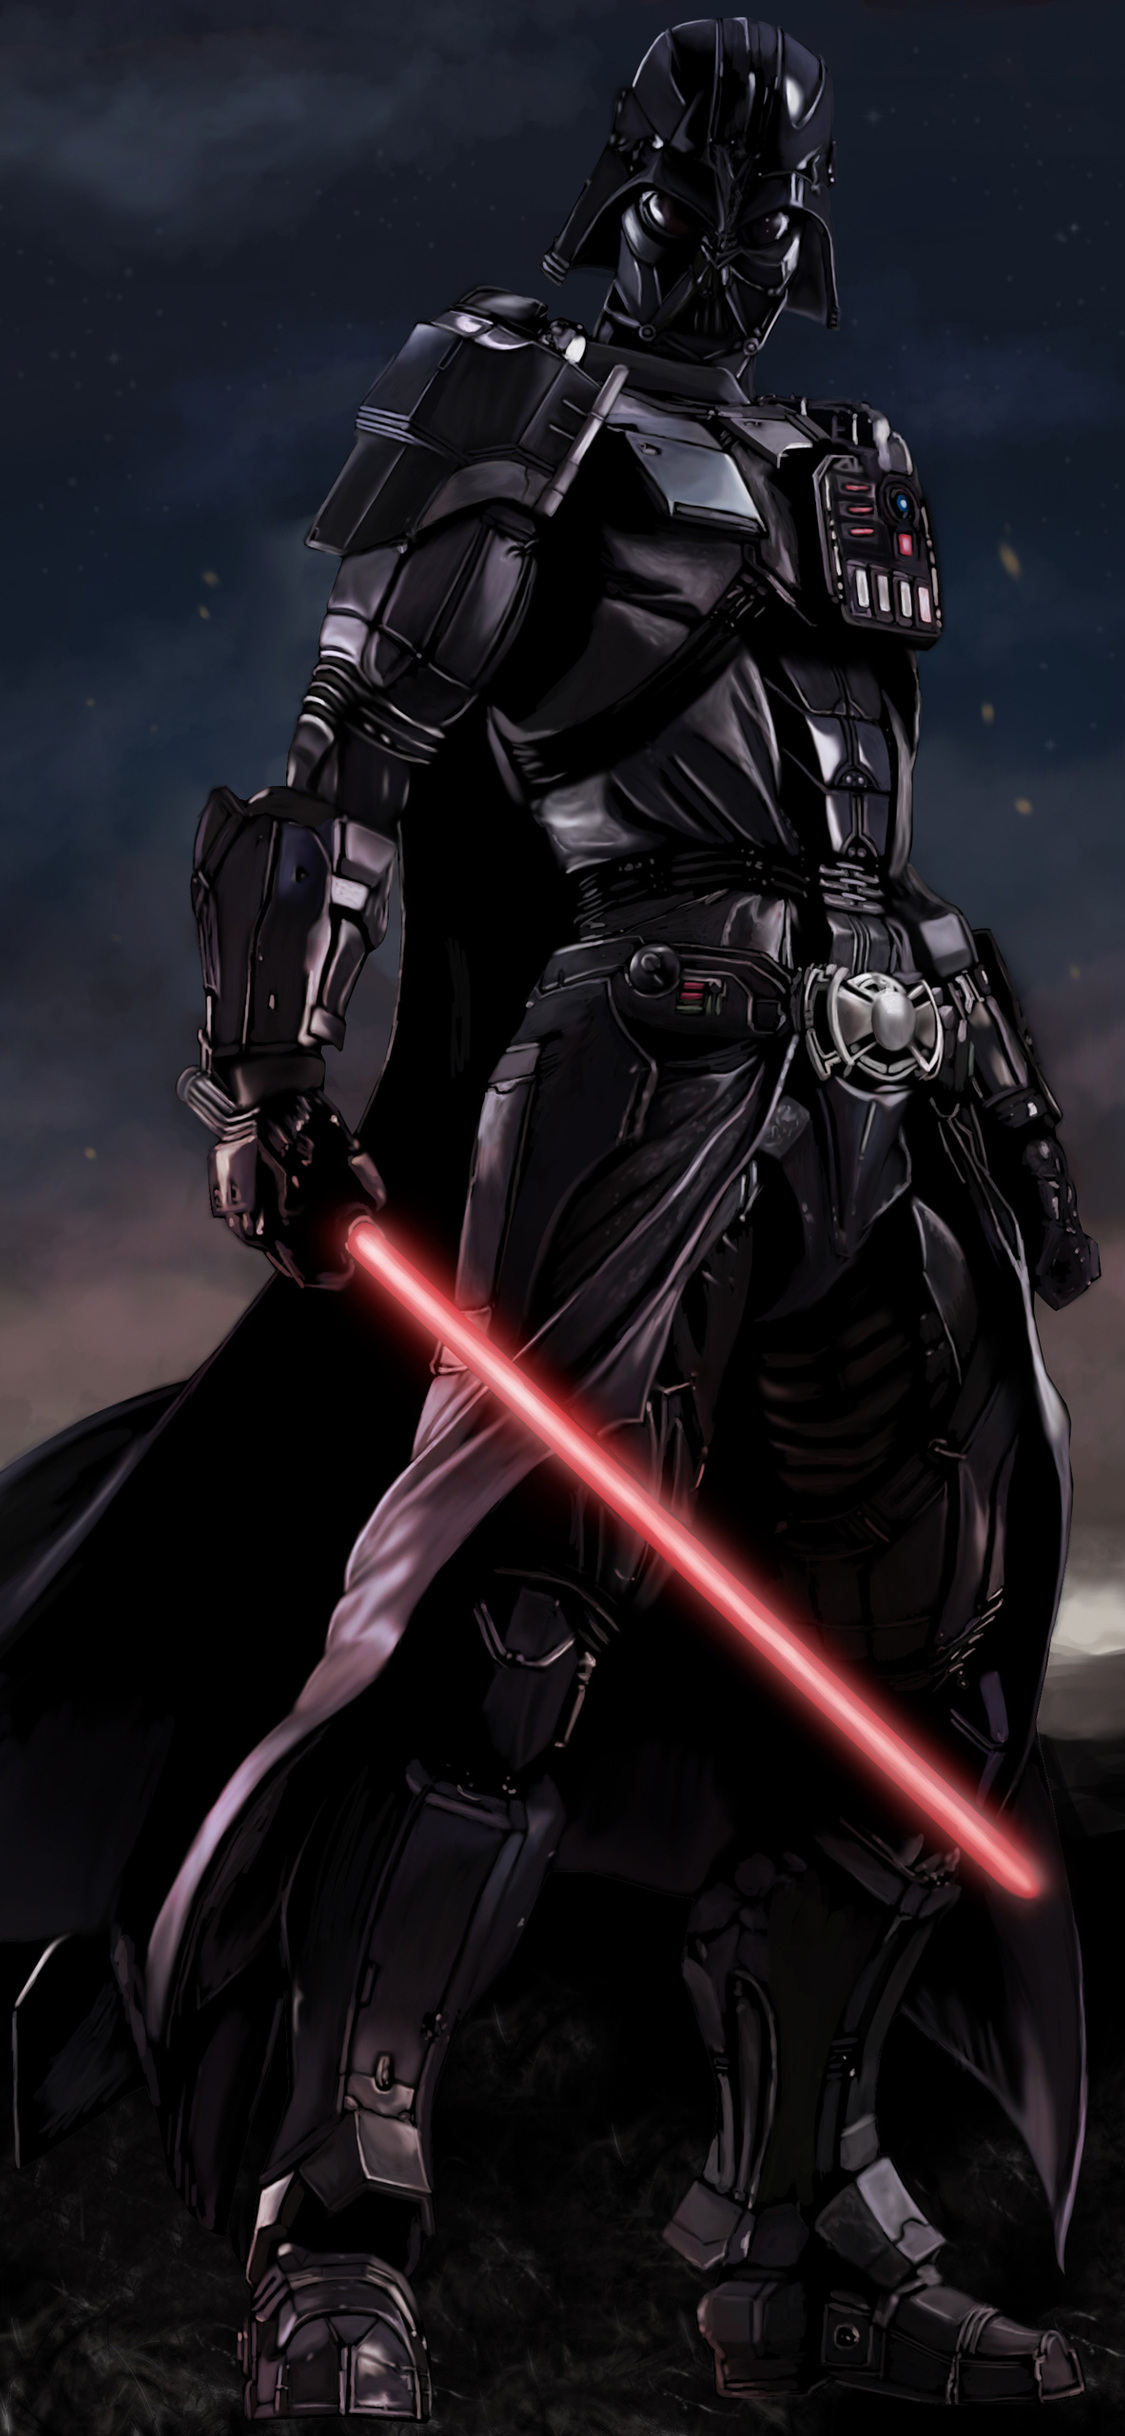 View Darth Vader Wallpaper Iphone 12 Background Everything All You Need